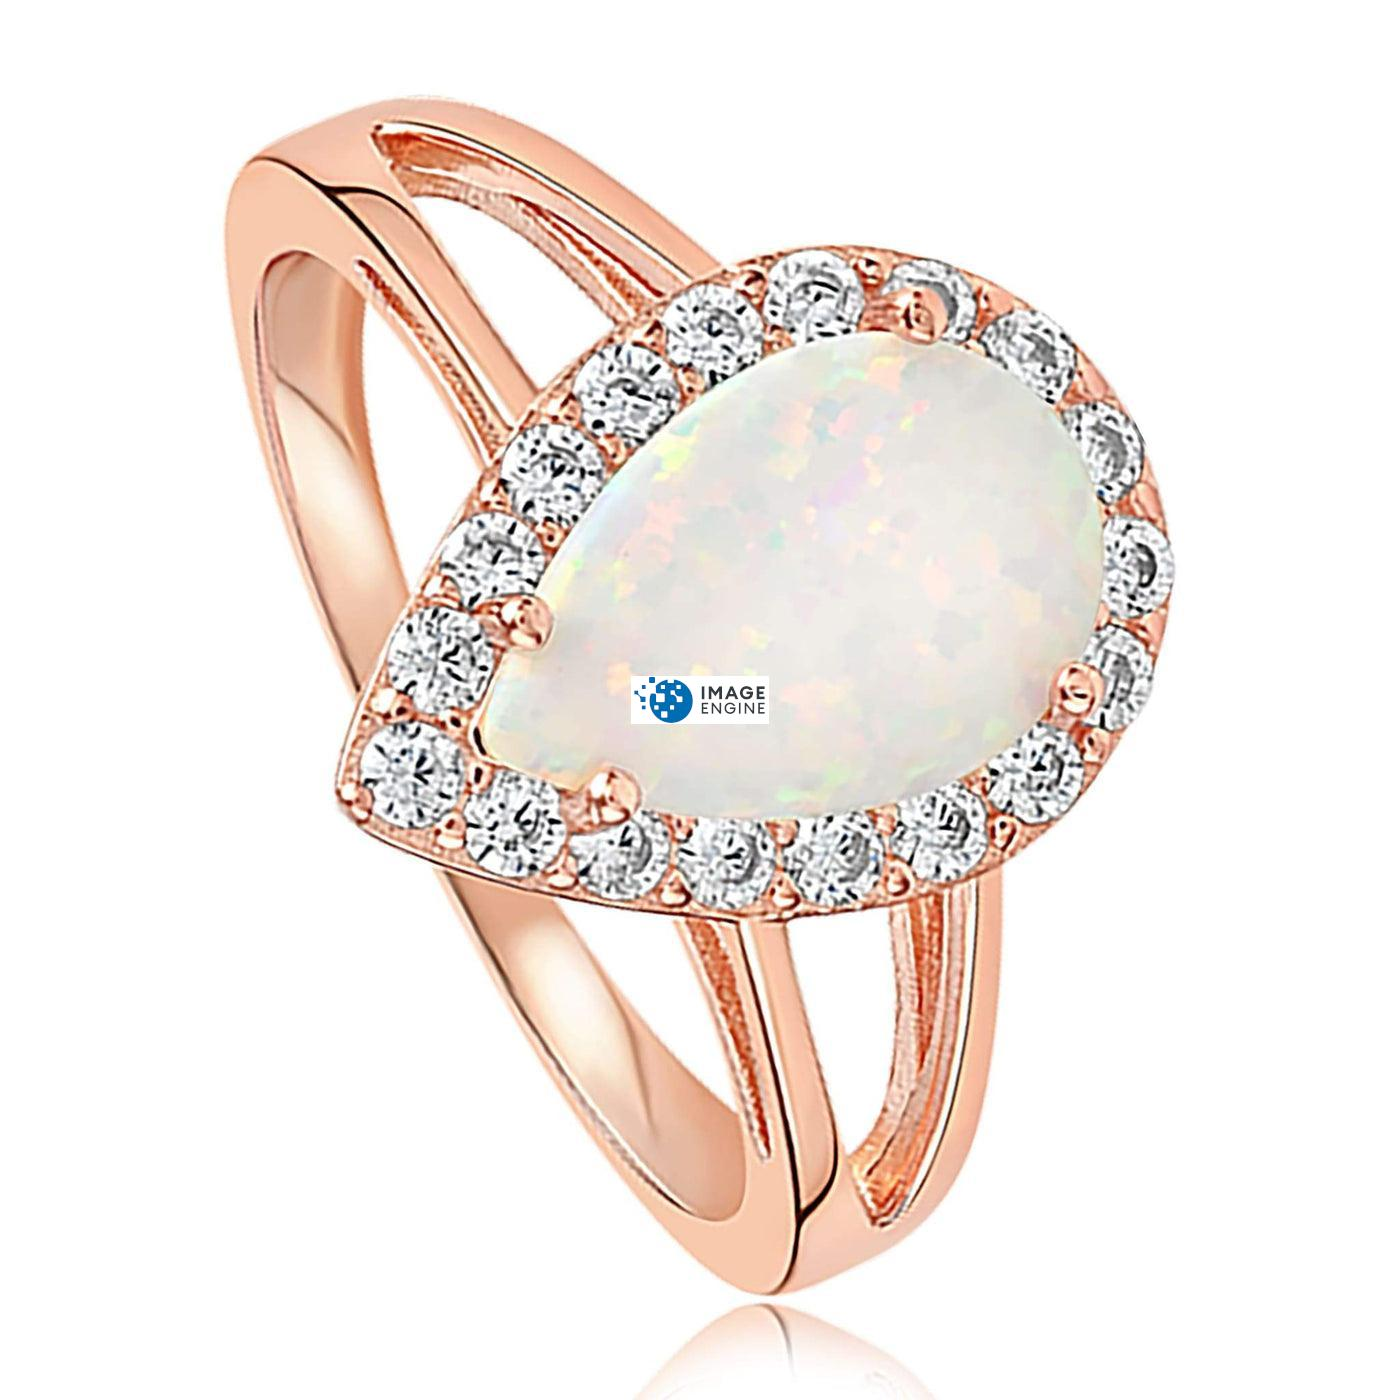 White Fire Champagne Opal Ring - Three Quarter View - 18K Rose Gold Vermeil